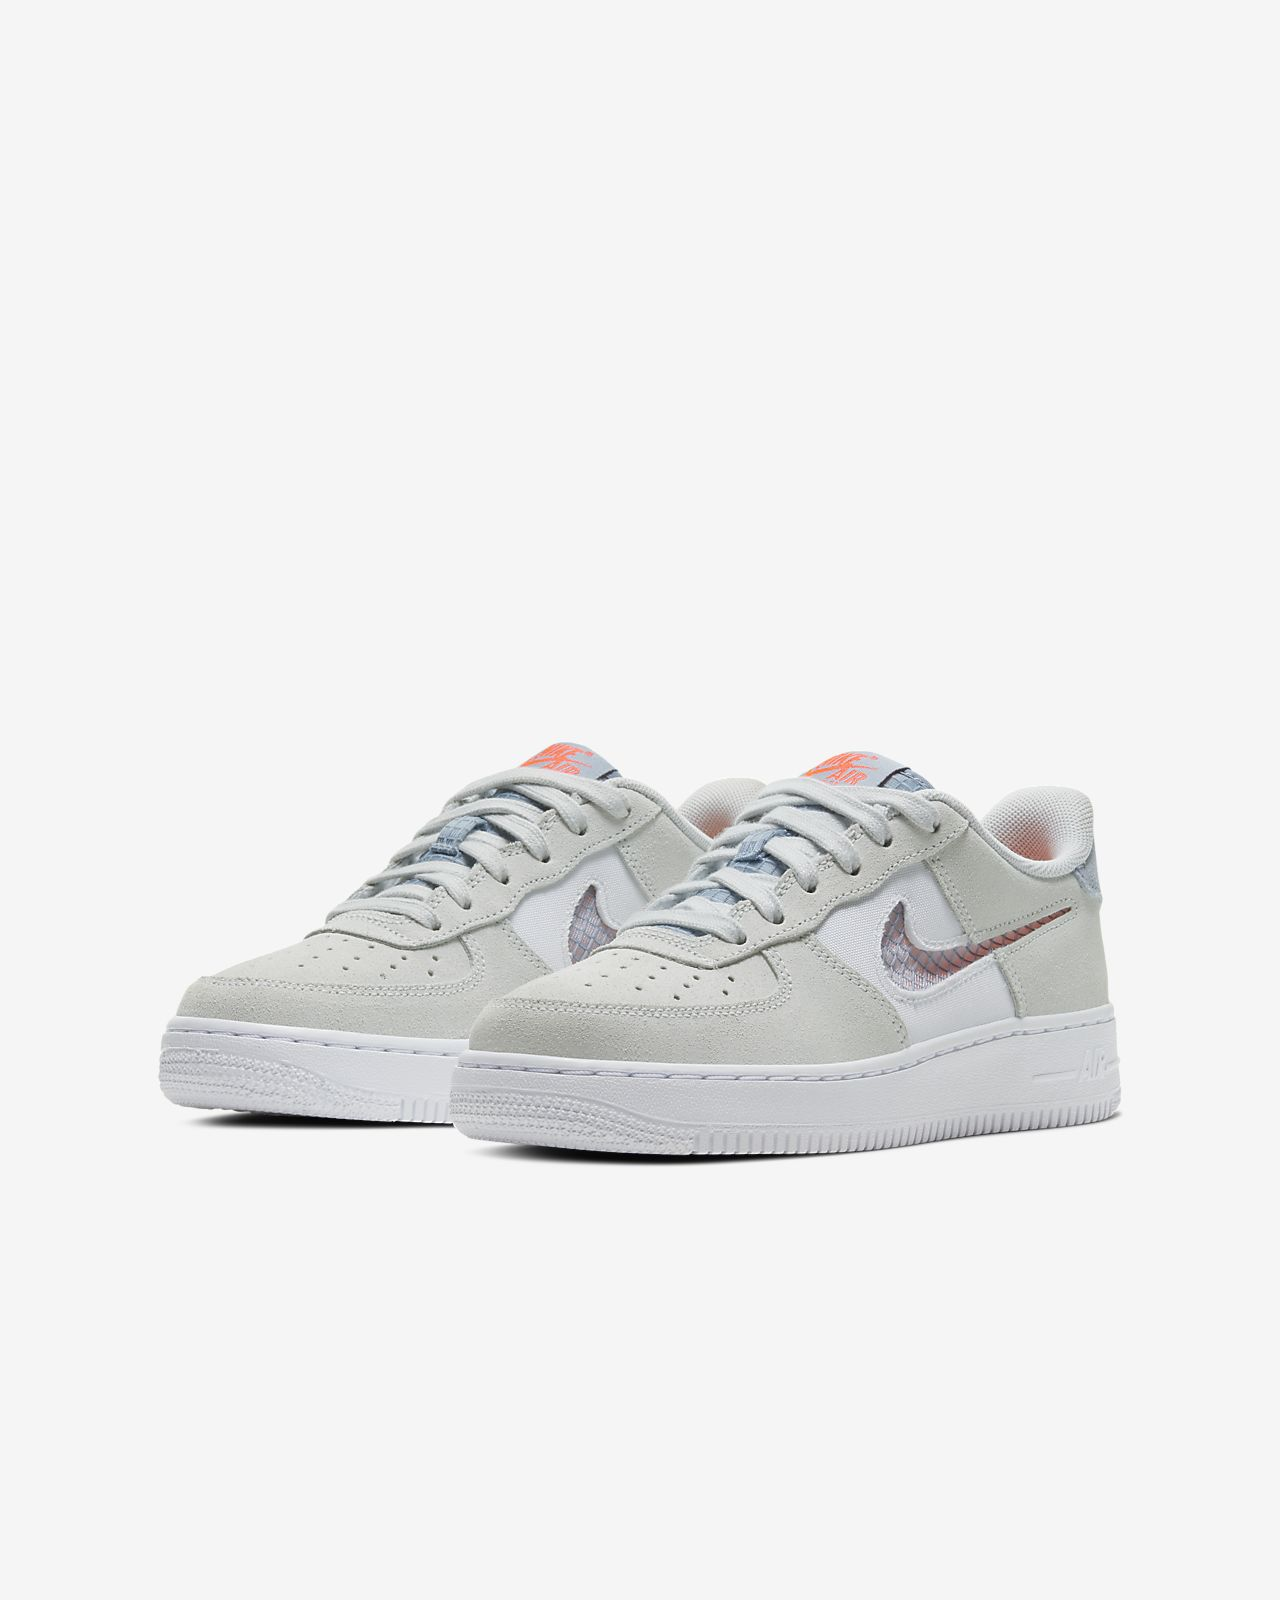 Nike Air Force 1 LV8 Older Kids' Shoe